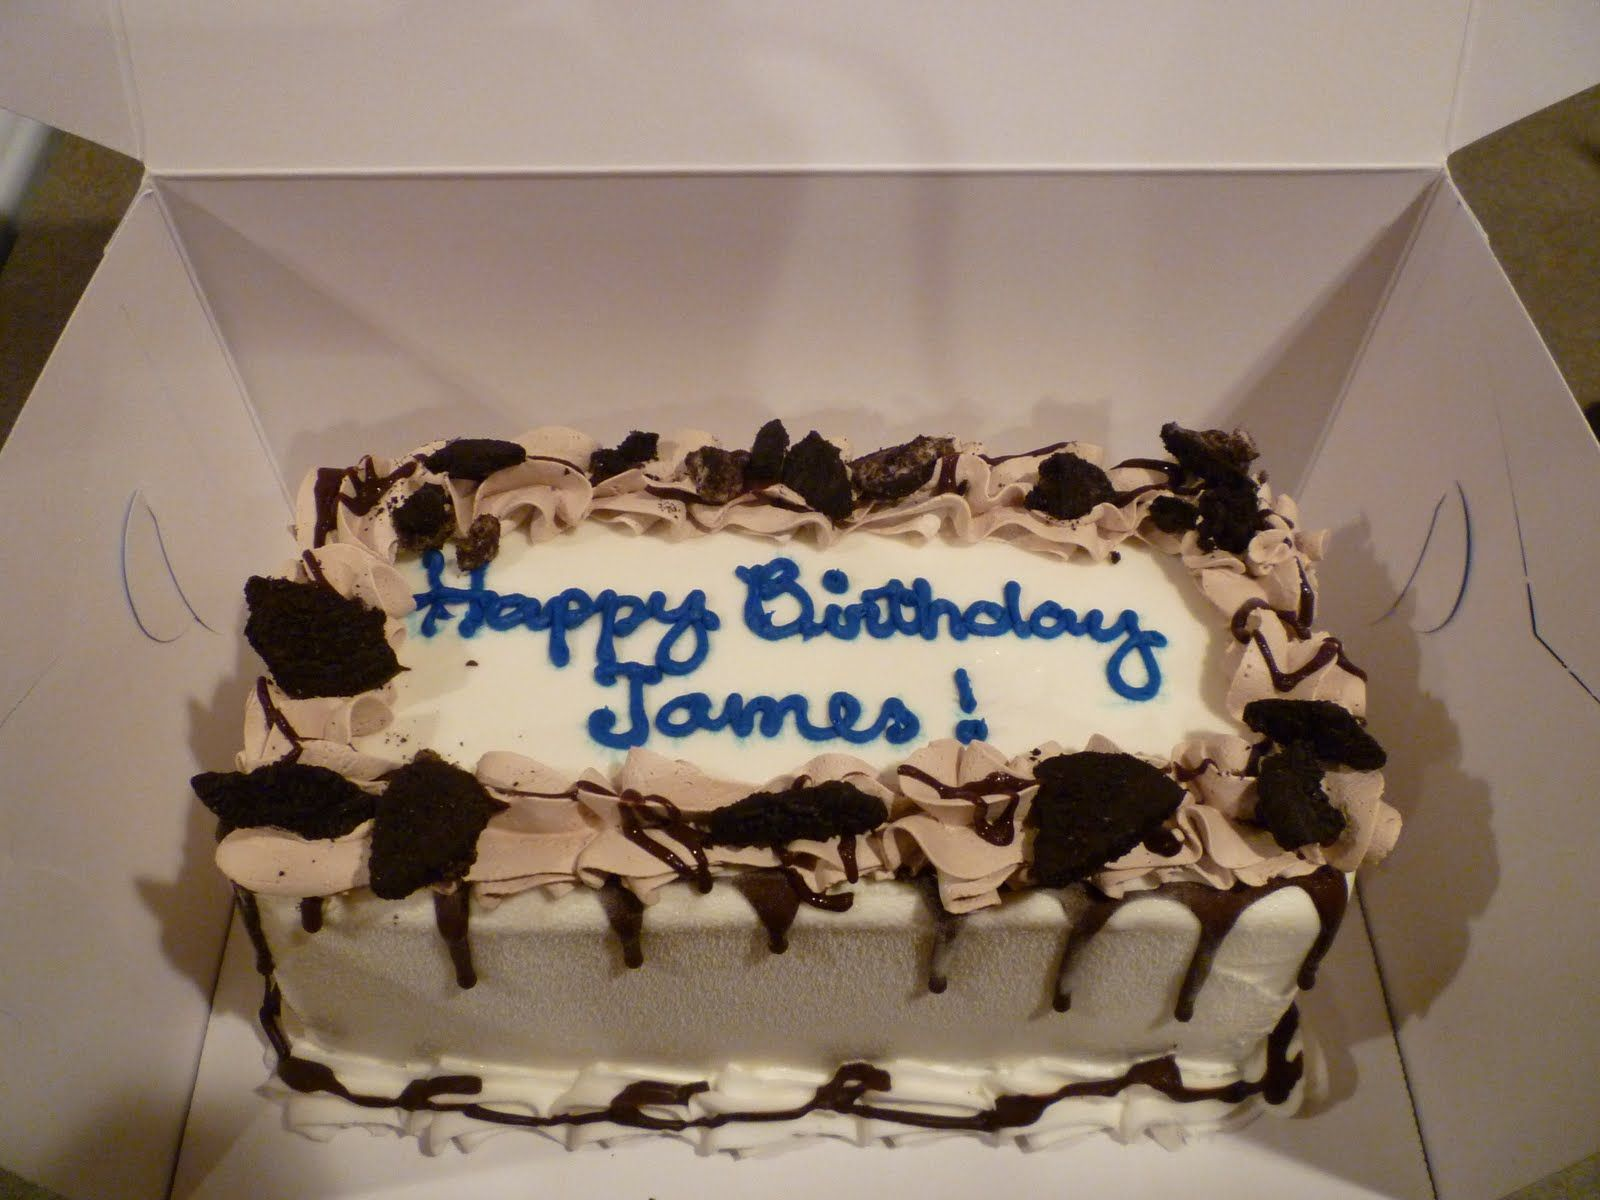 Pin by prerna arora on happy birthday names pinterest happy birthday all awesome and unique happy birthday james wishes here you can find all the things related to happy birthday wishes for james thecheapjerseys Images